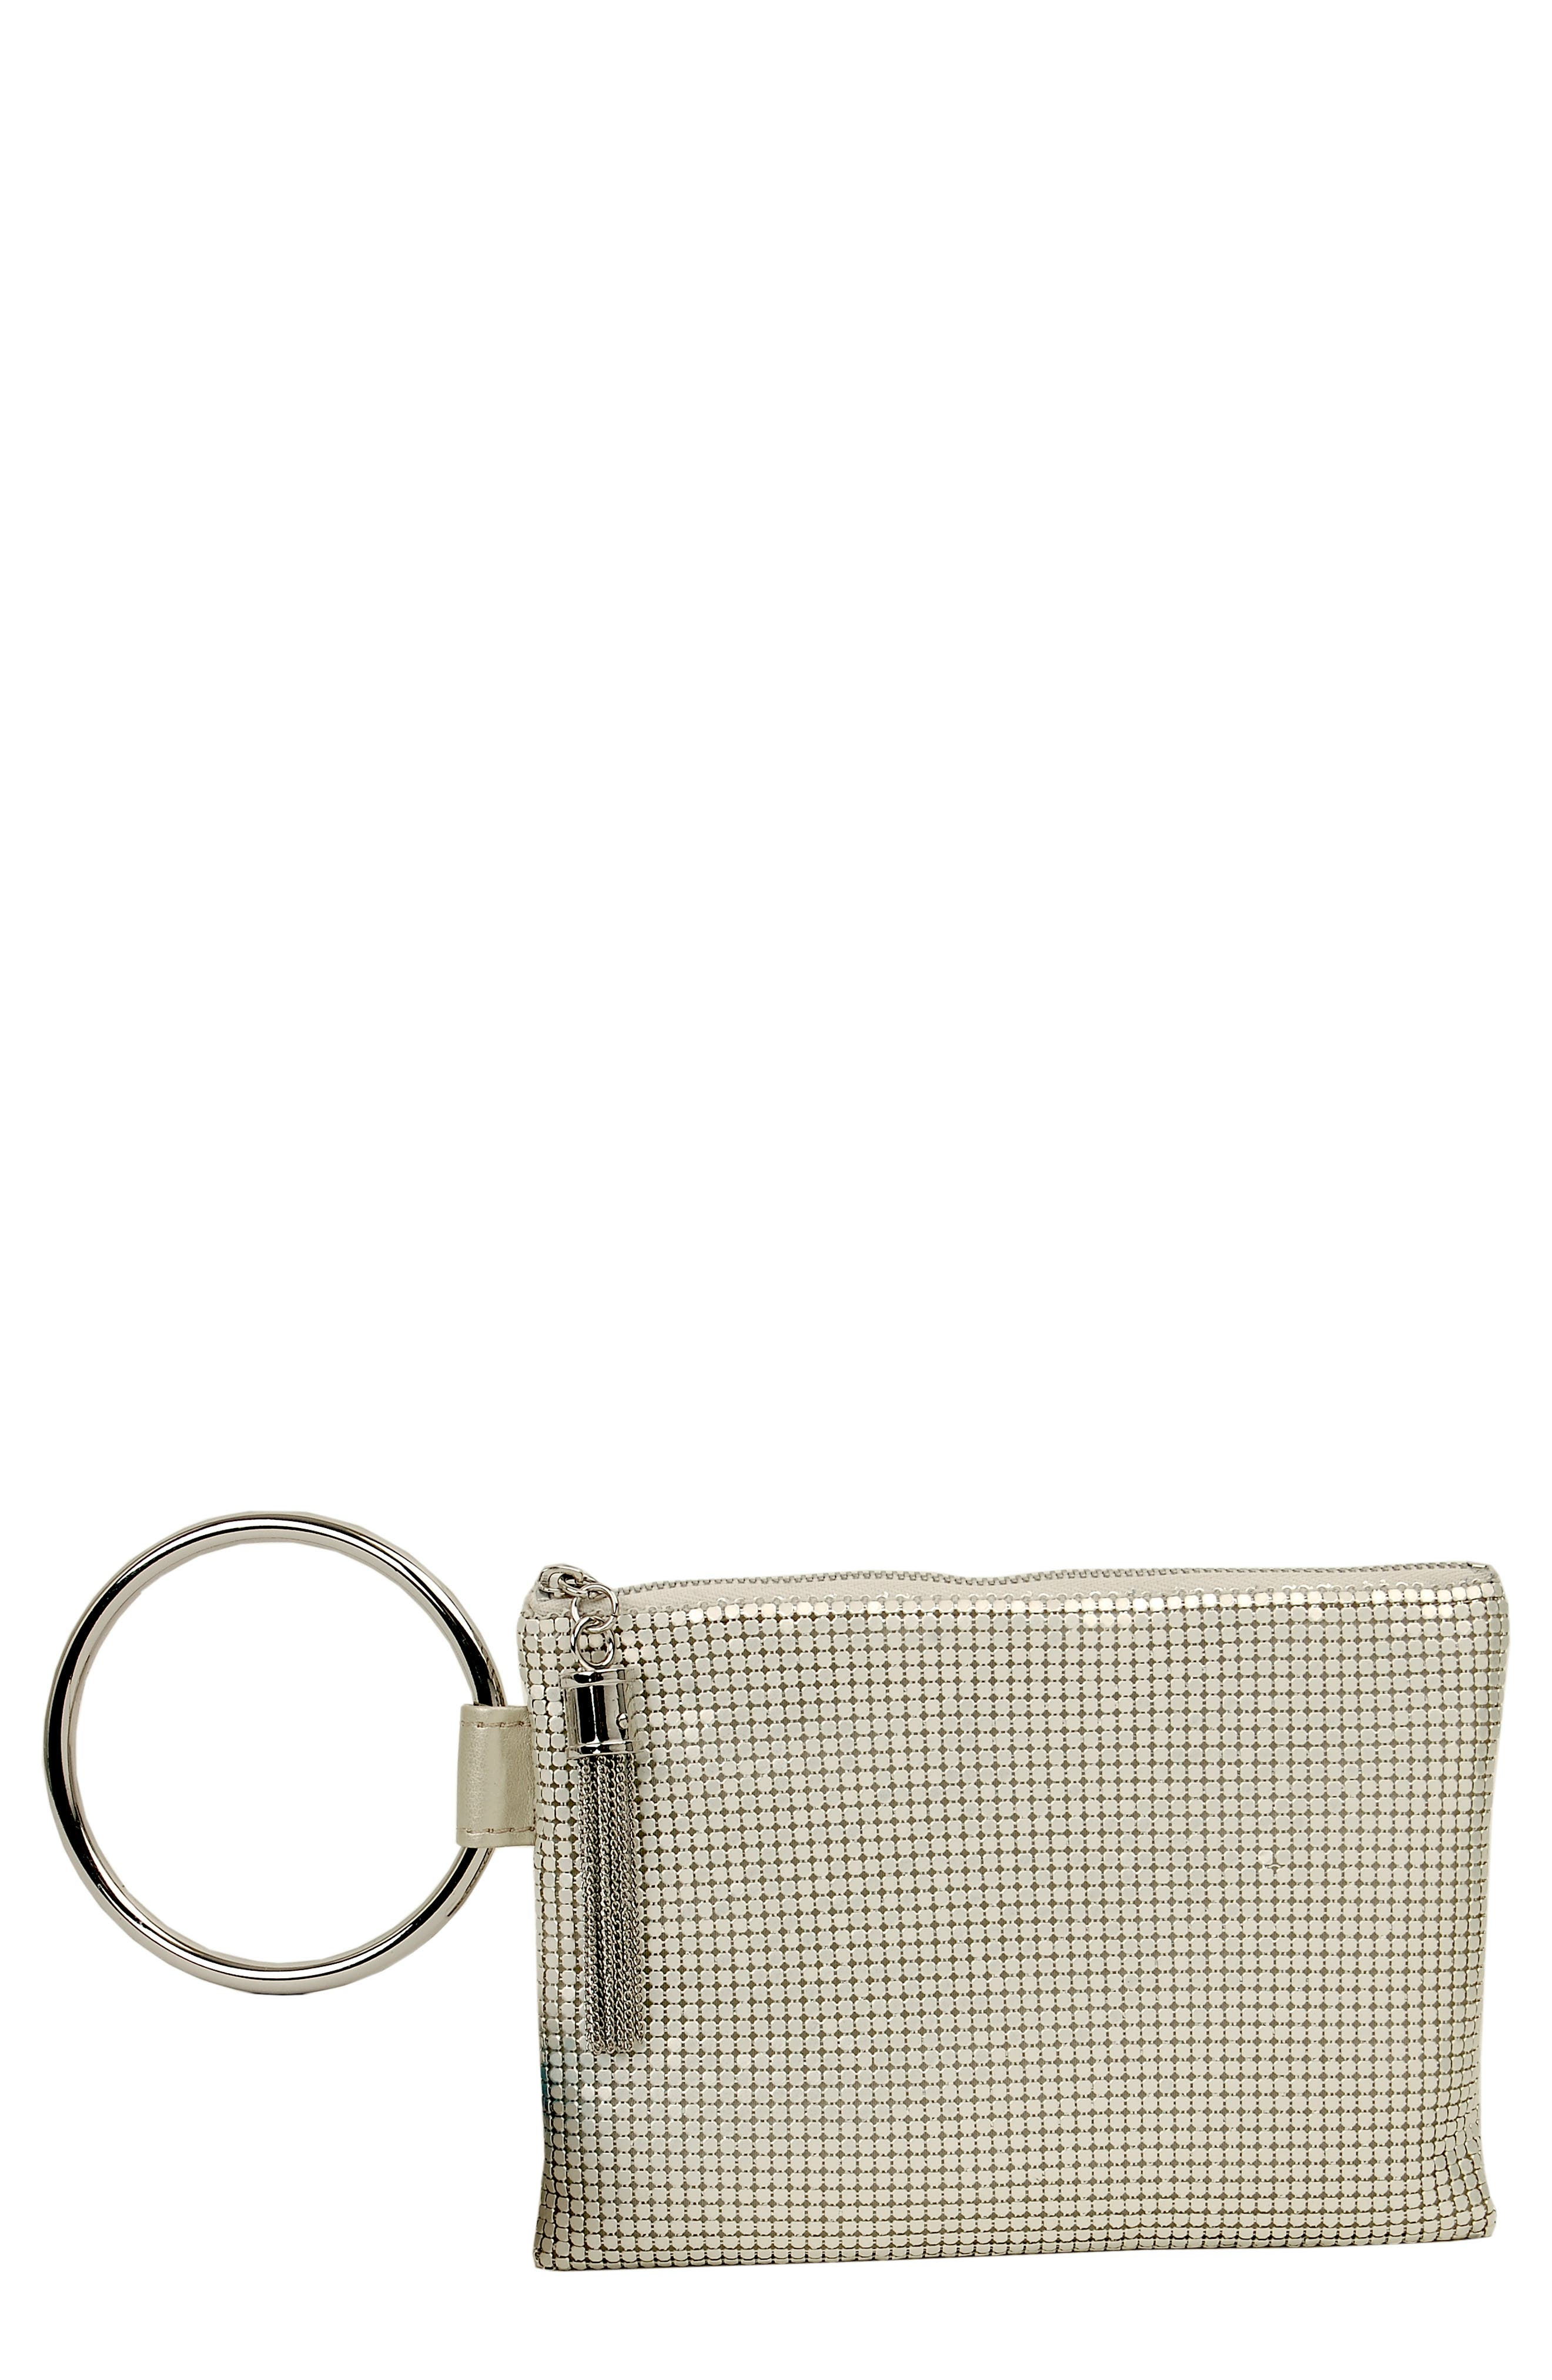 WHITING & DAVIS Bangle Wristlet - Ivory in Pearl